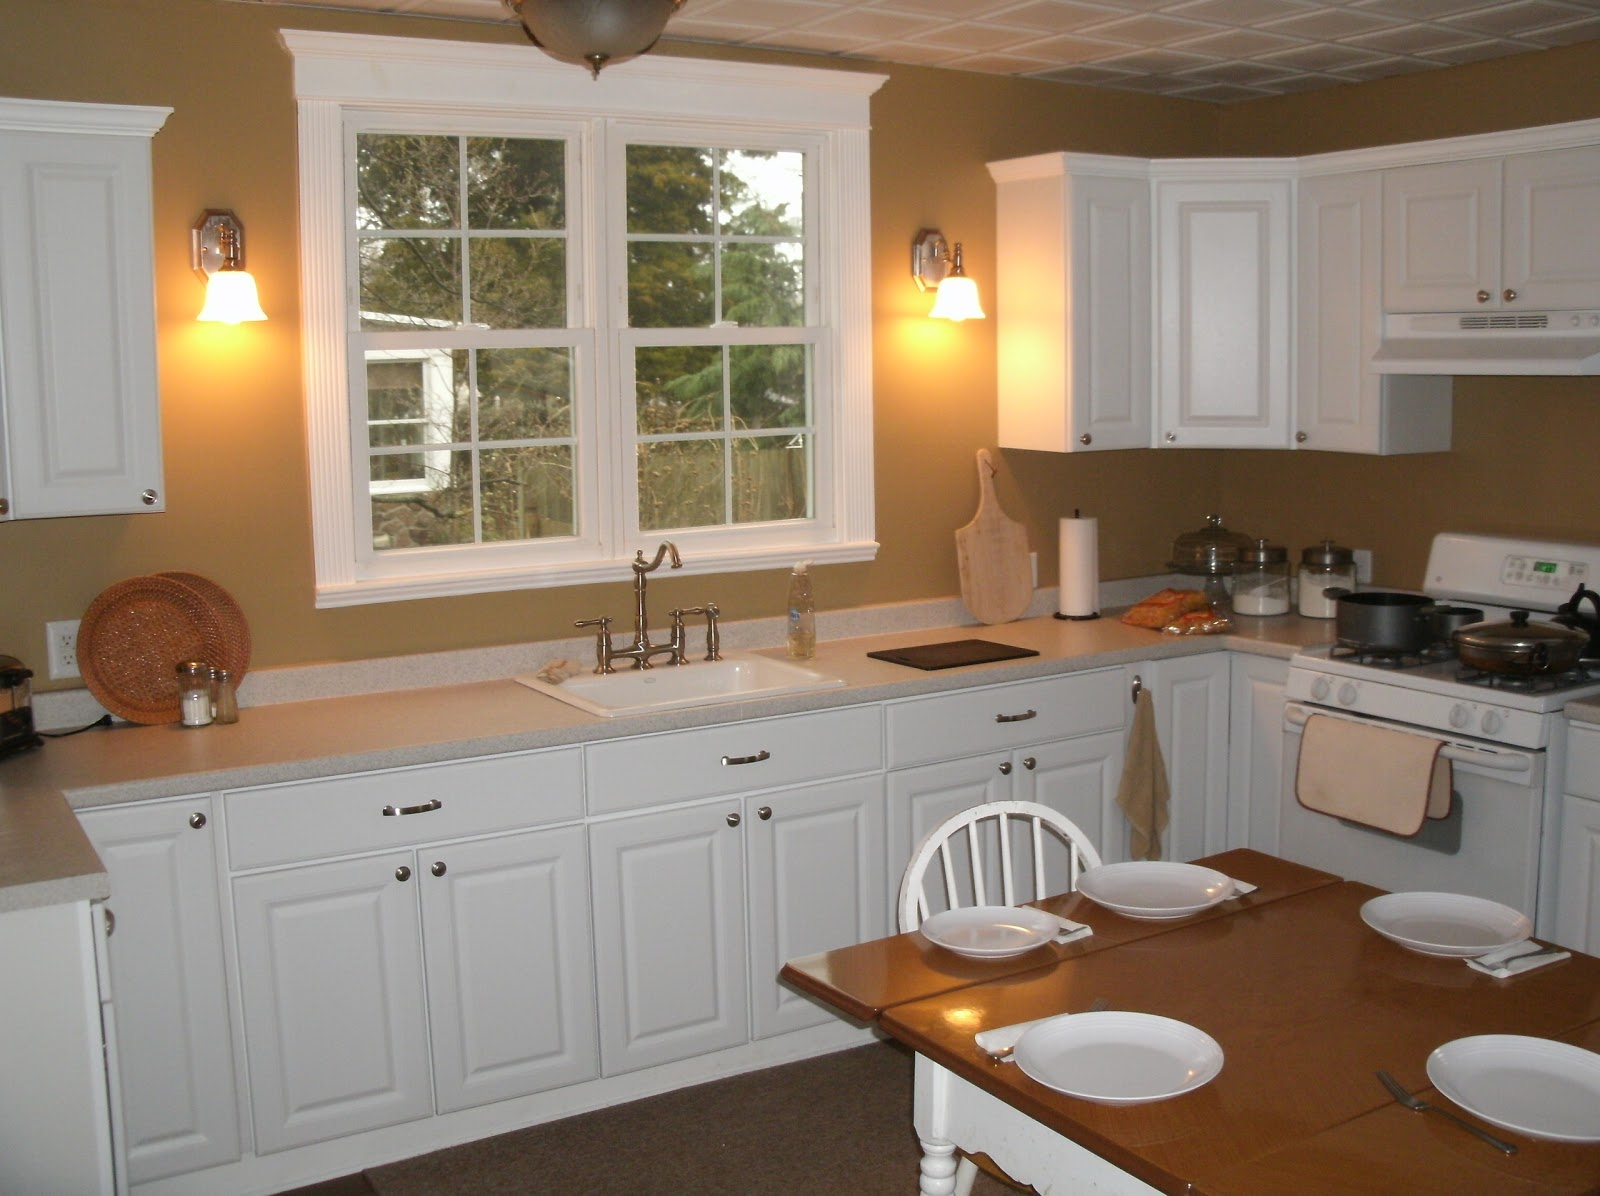 Home remodeling and improvements tips and how to 39 s for Kitchen remodel pics